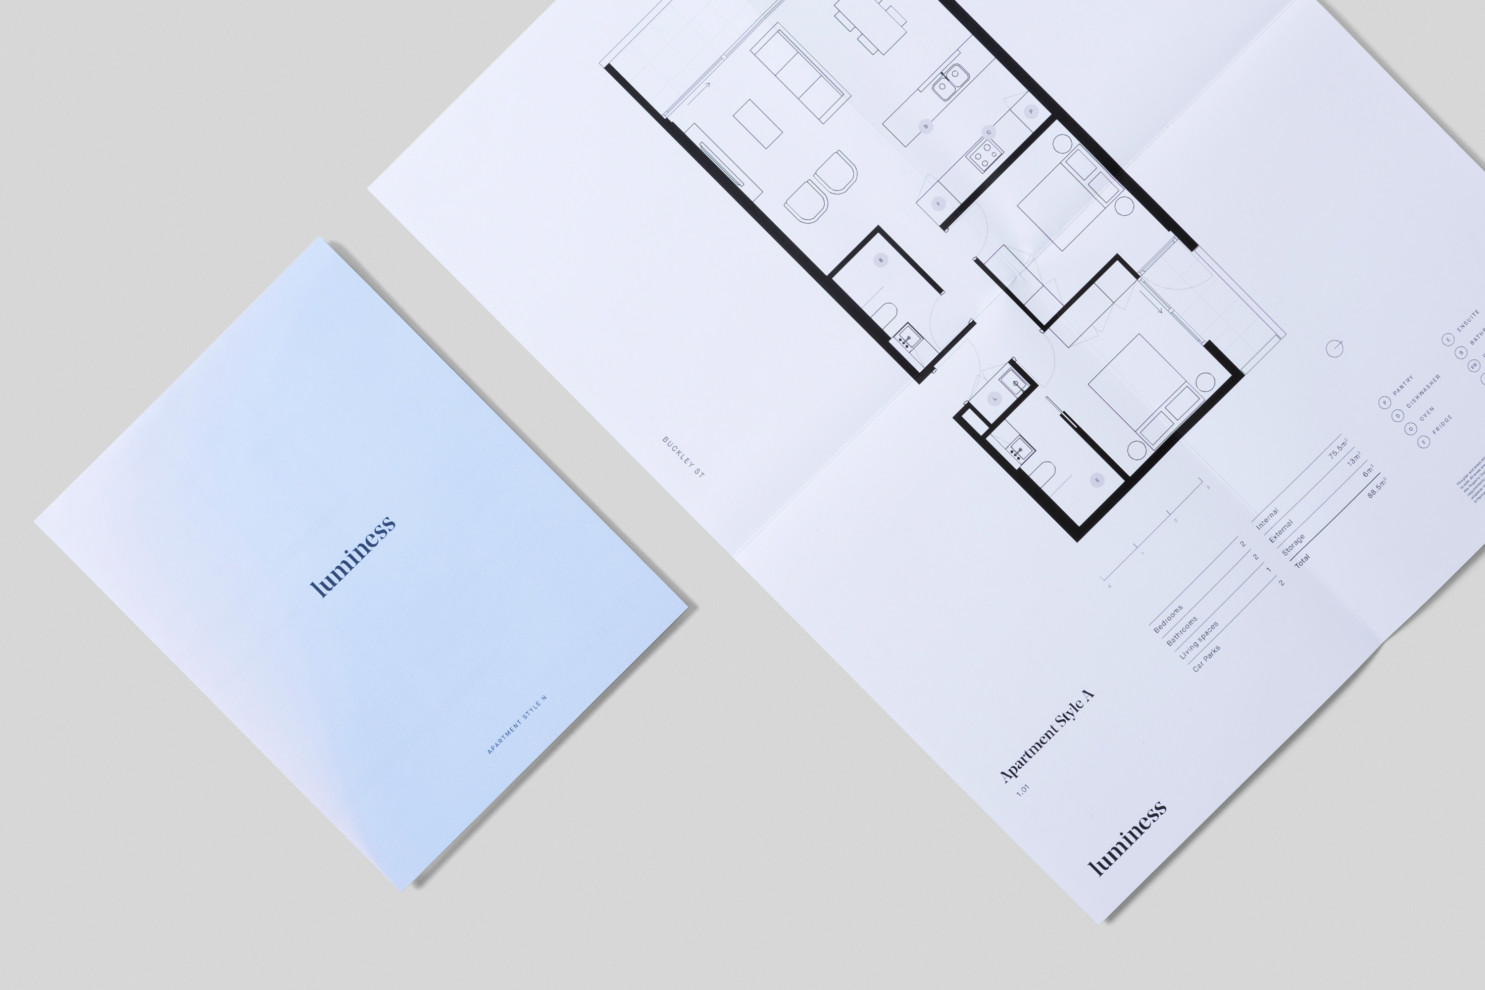 Luminess - Floorplans